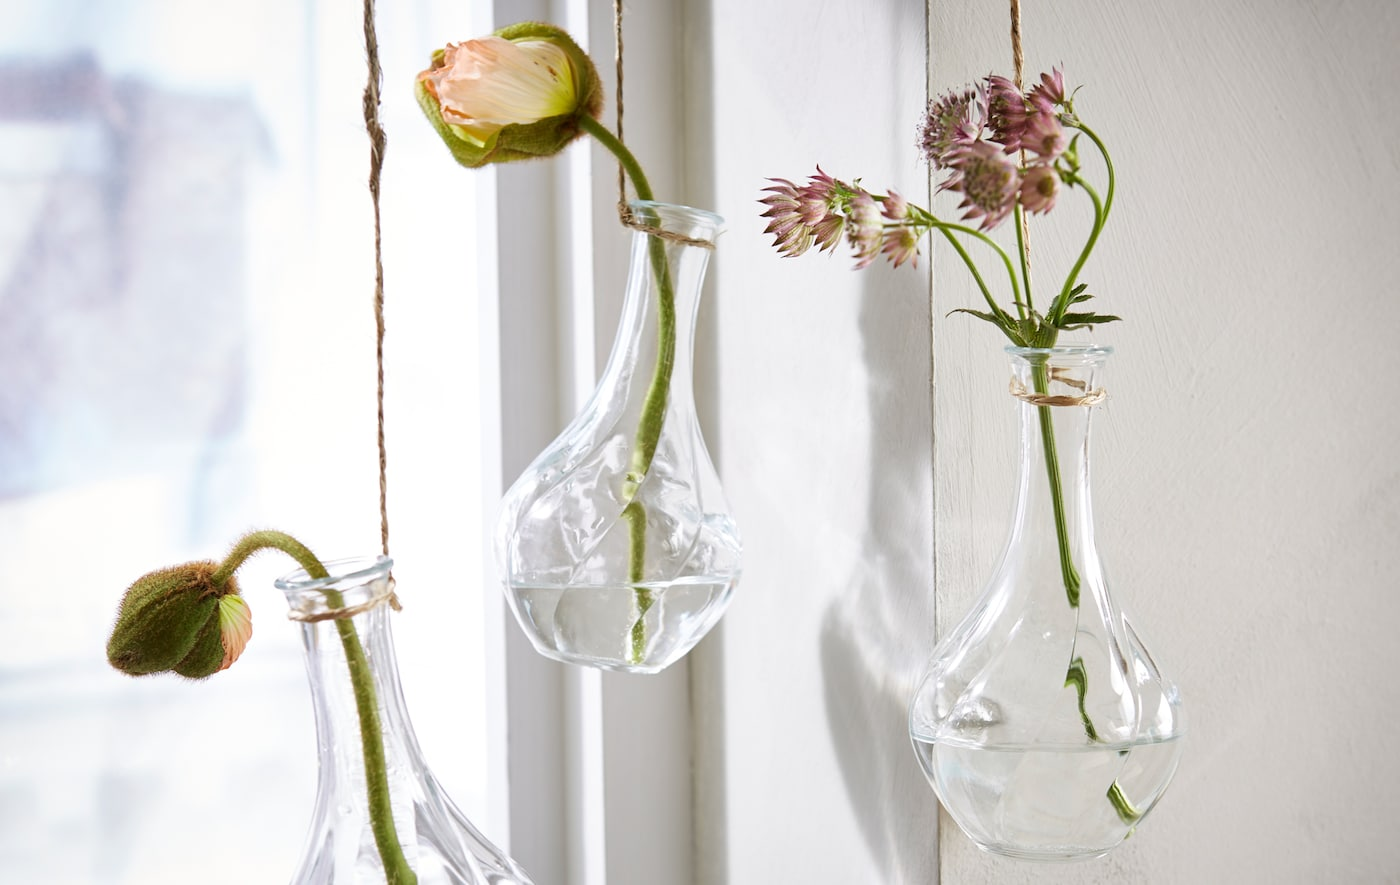 Three glass vases with a single flower in each, hang by a window for a colourful still-life.